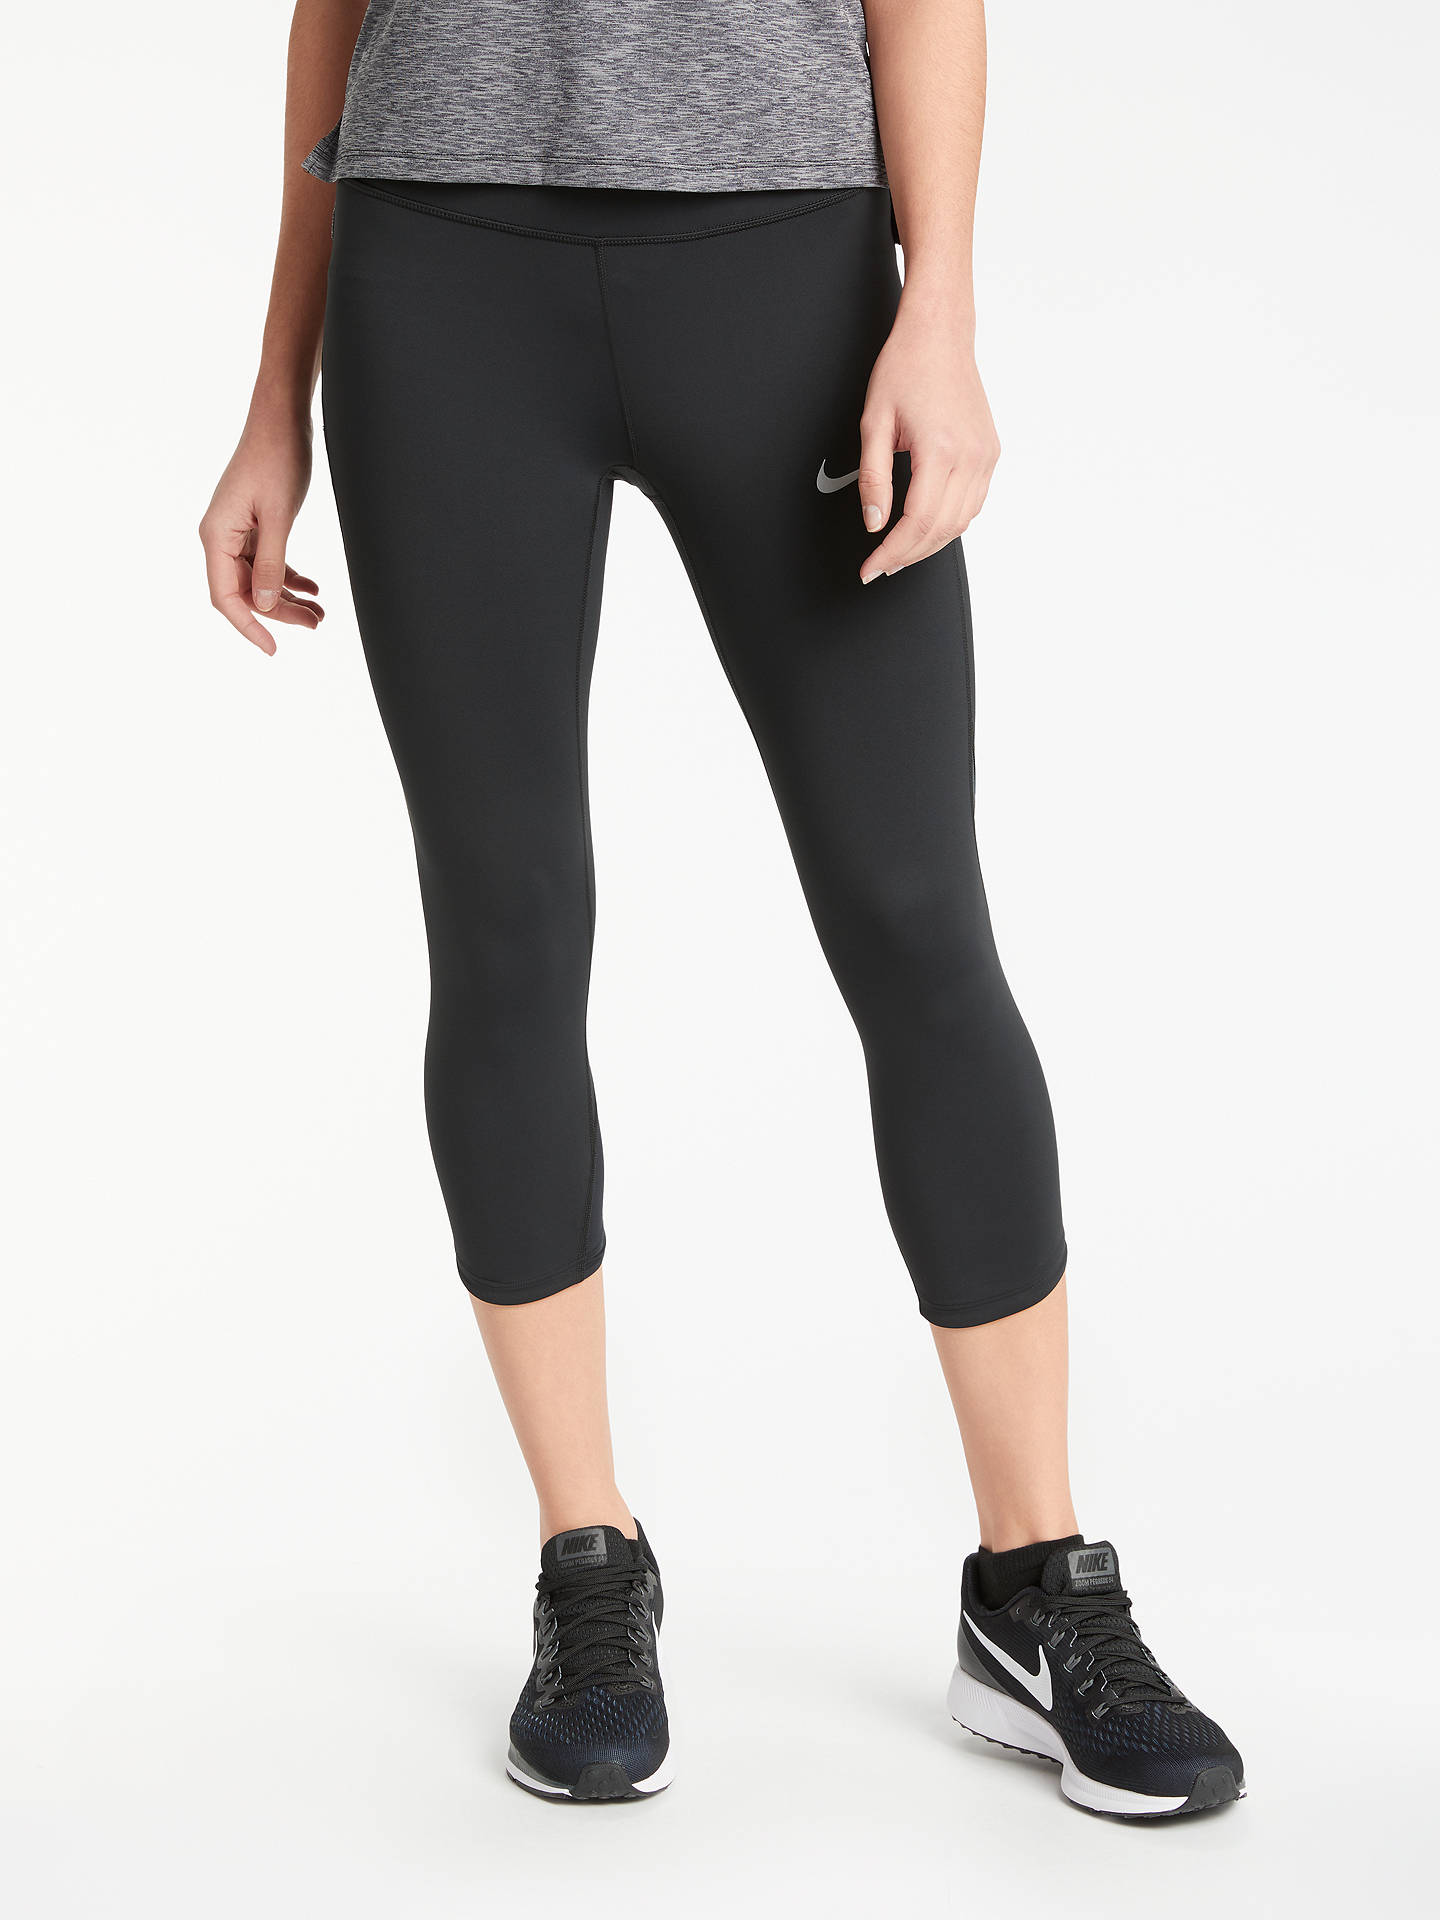 6c8cbe2f7103a5 Buy Nike Power Epic Running Tights, Black, XS Online at johnlewis.com ...